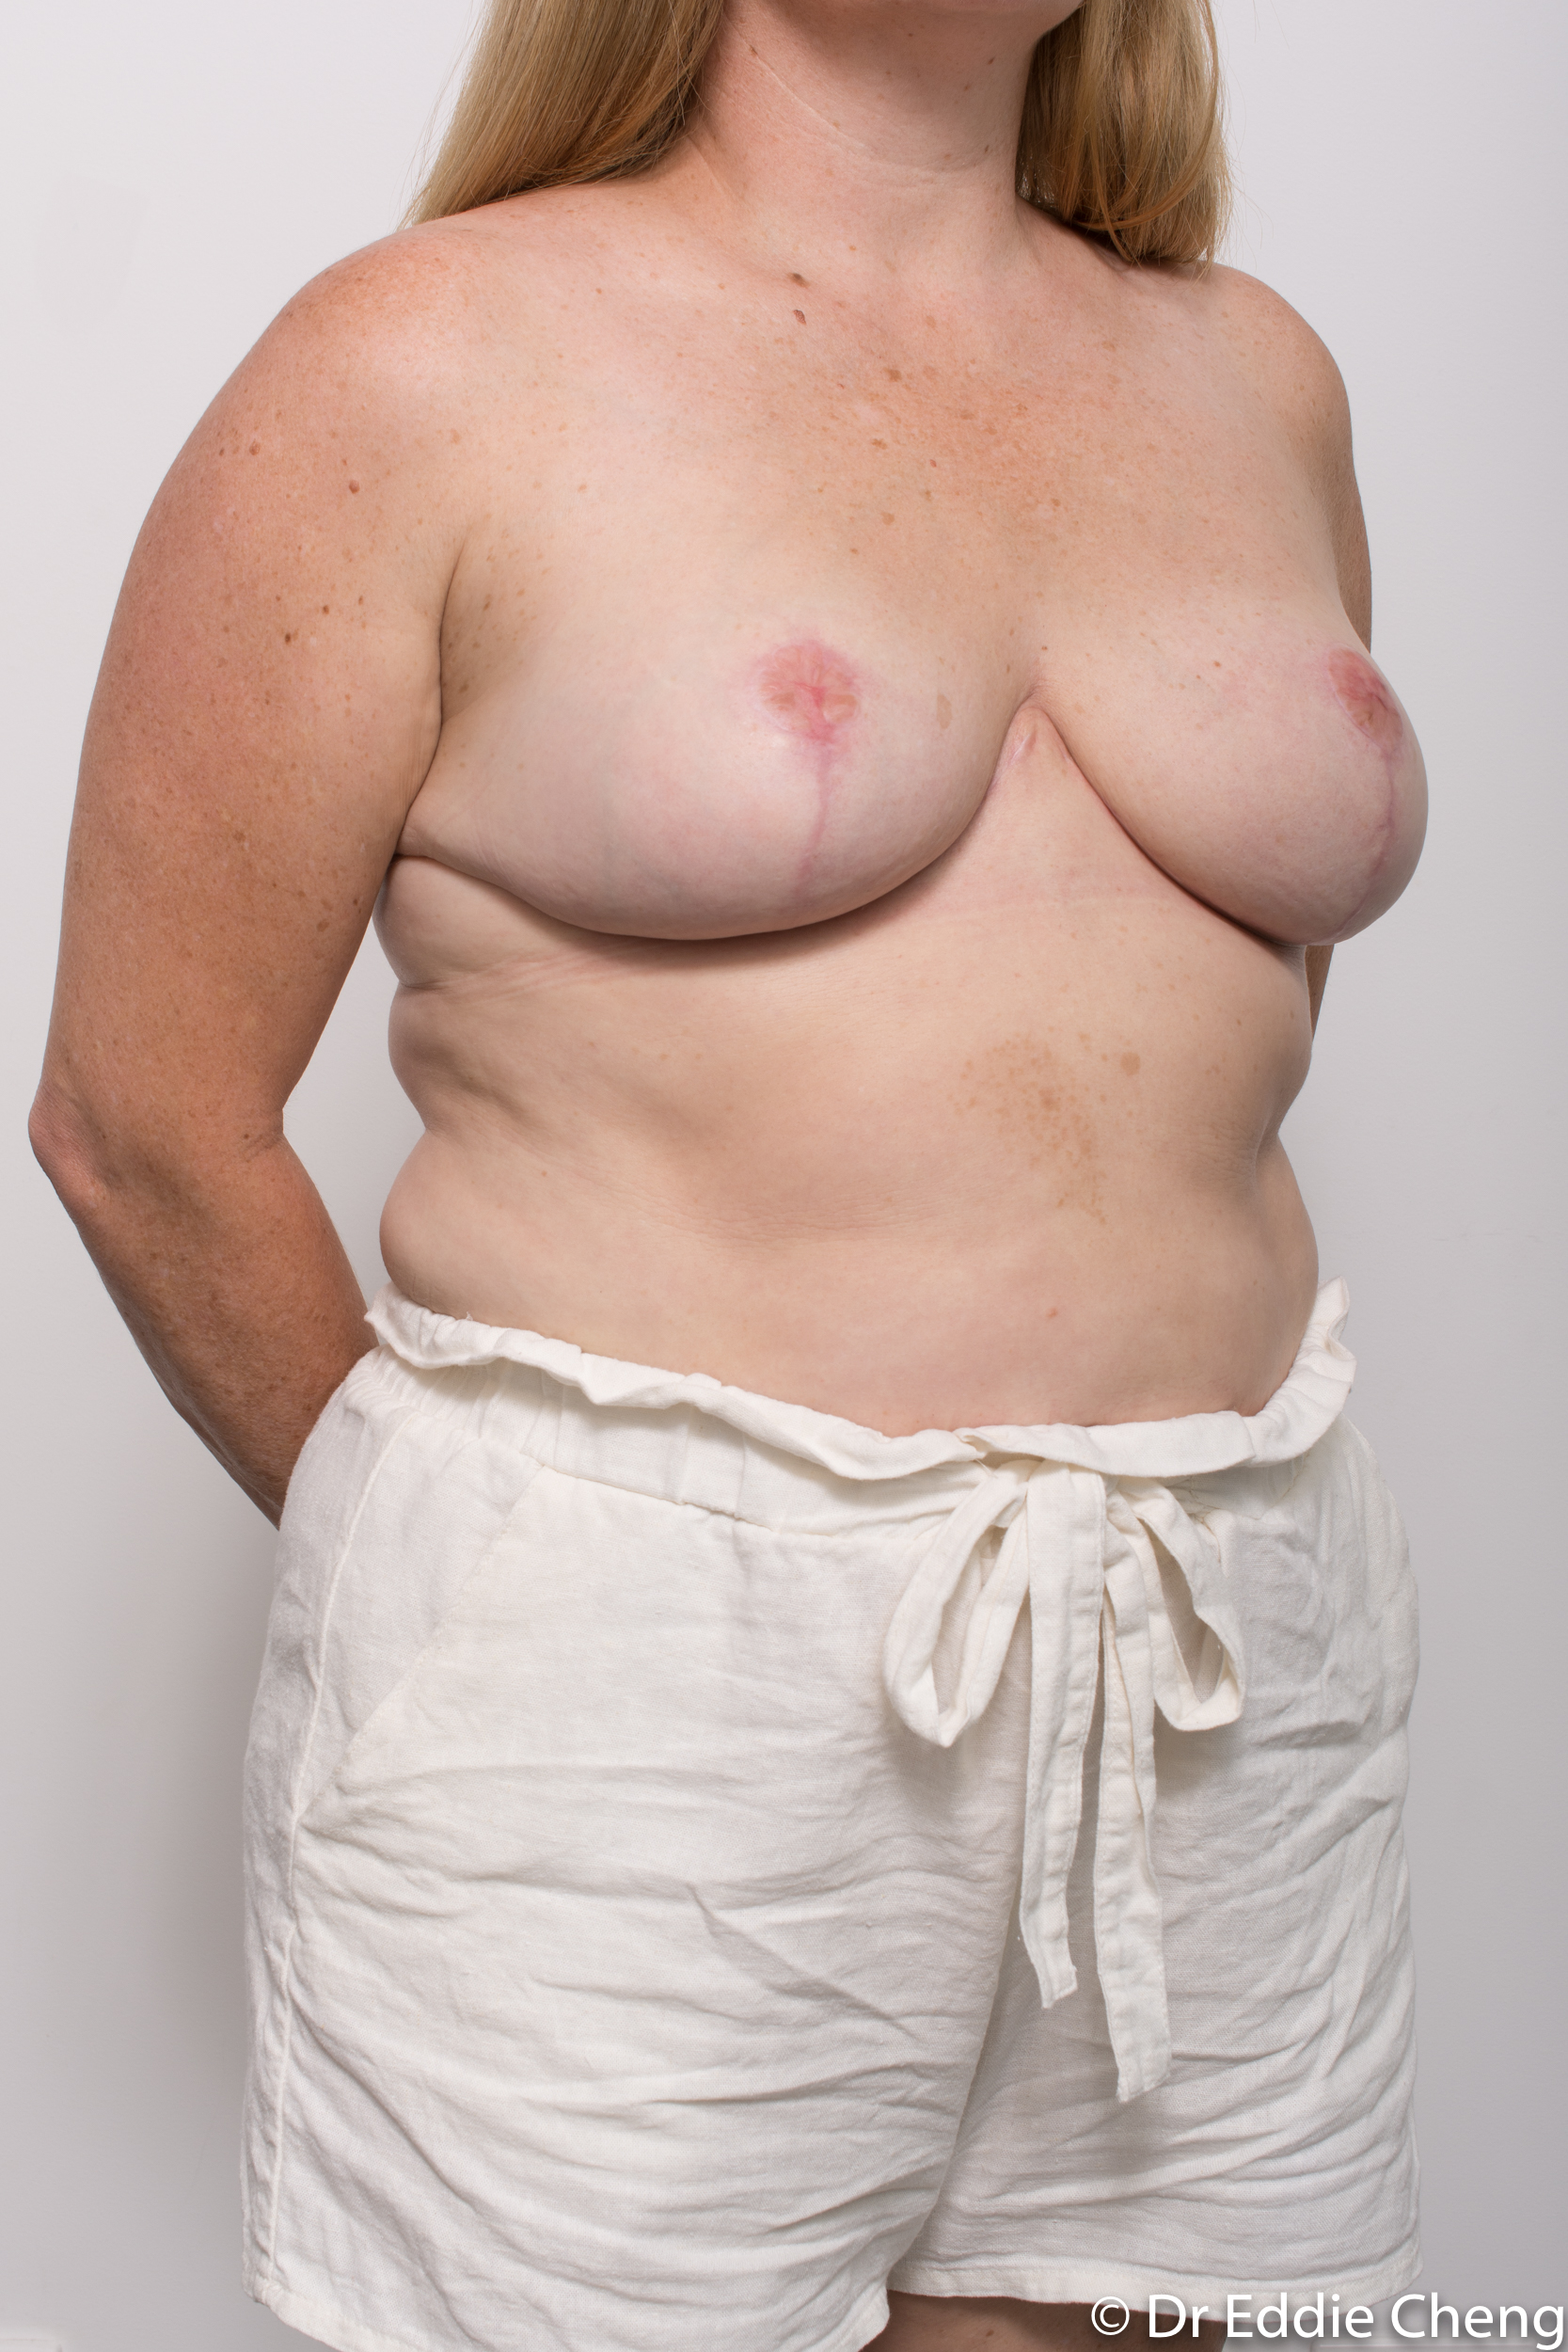 breast reduction dr eddie cheng brisbane surgeon pre and post operative images-10